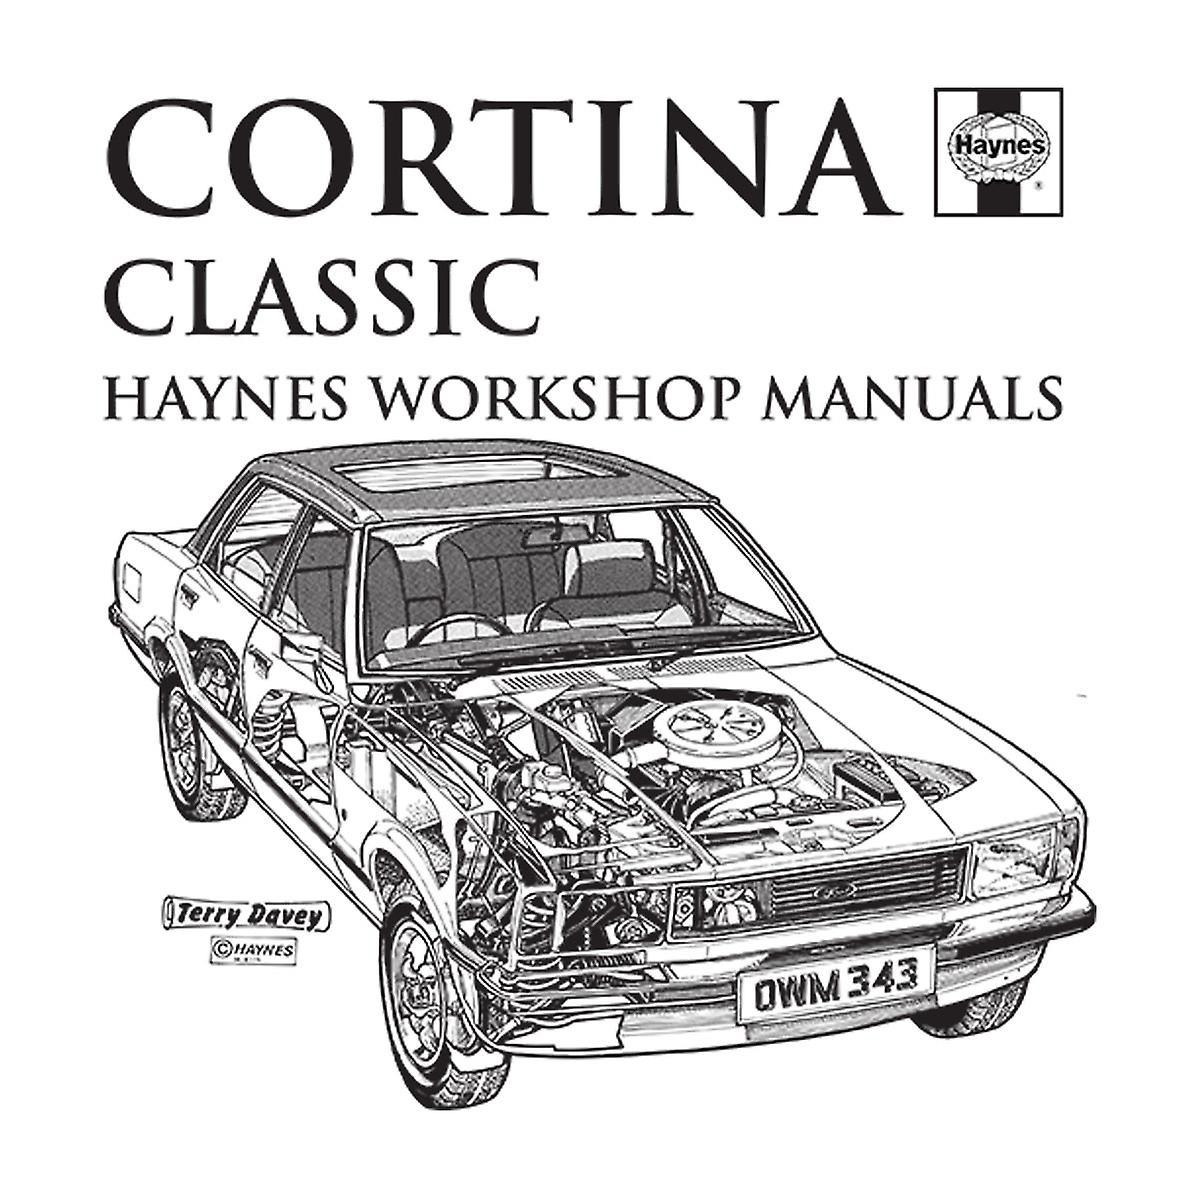 Haynes Owners Workshop Manual 0343 Ford Cortina Classic